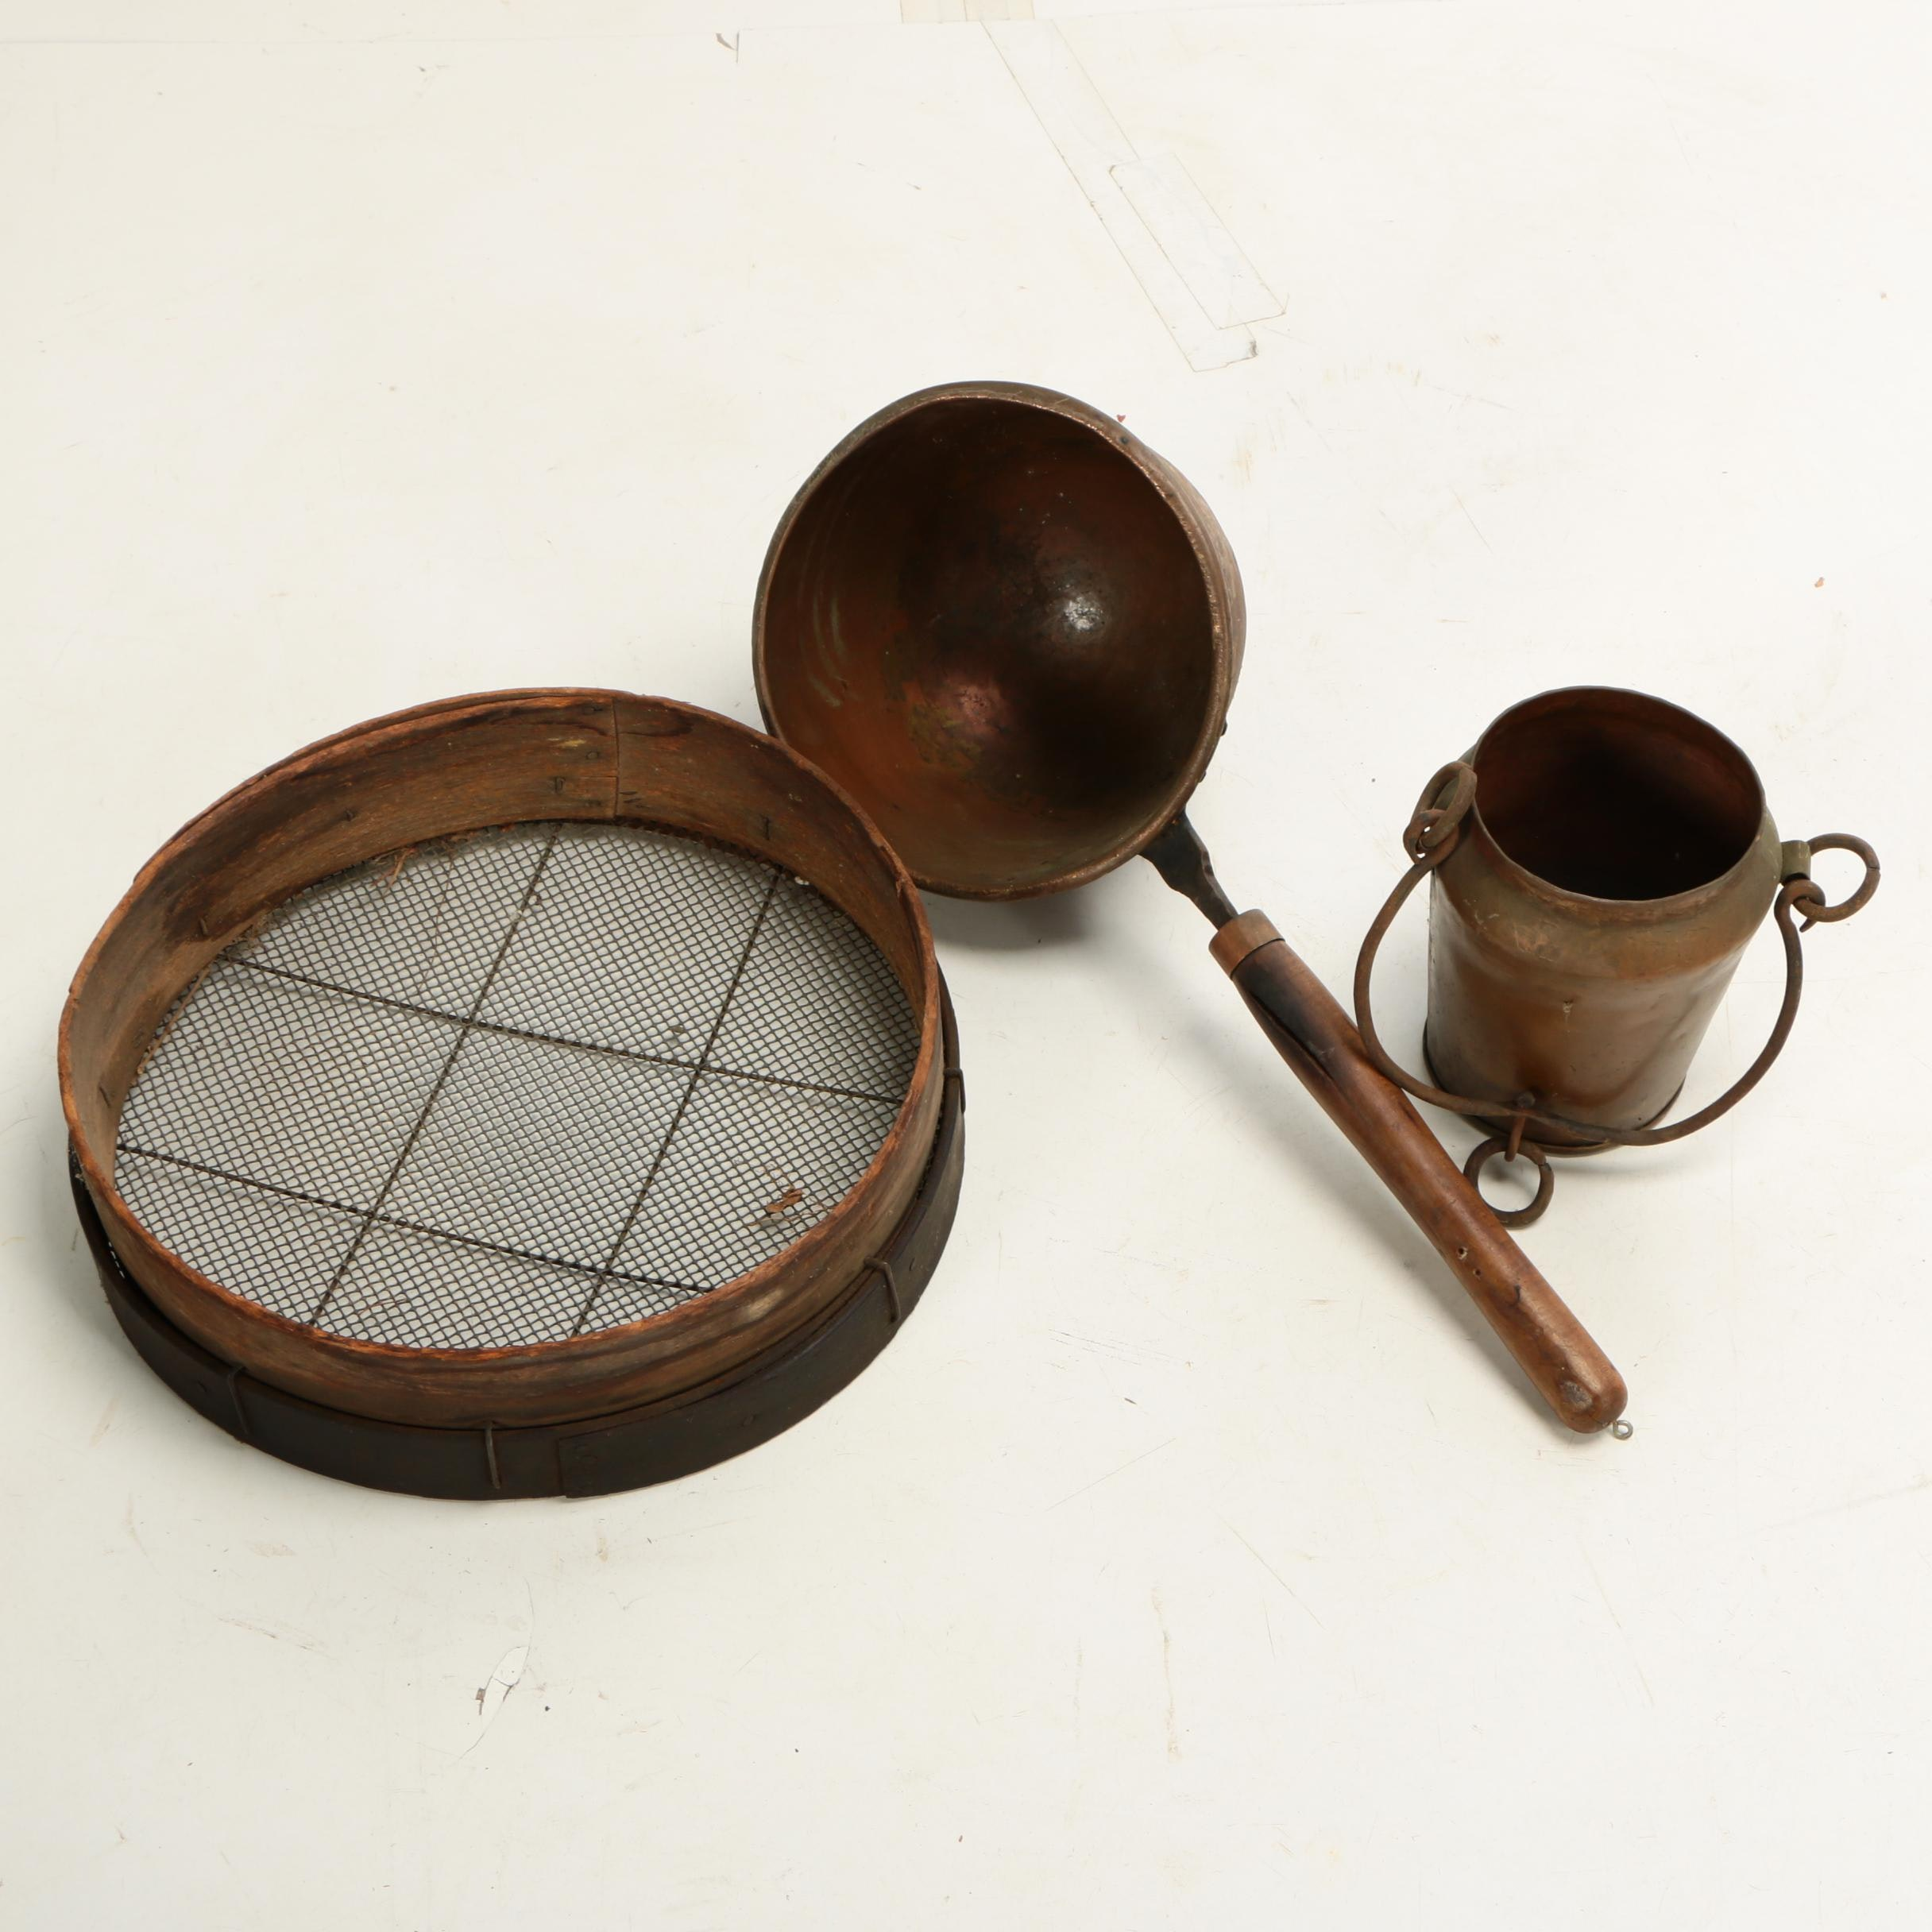 Industrial Copper Sauce Pot and Kettle with Mesh Sieve, 19th Century